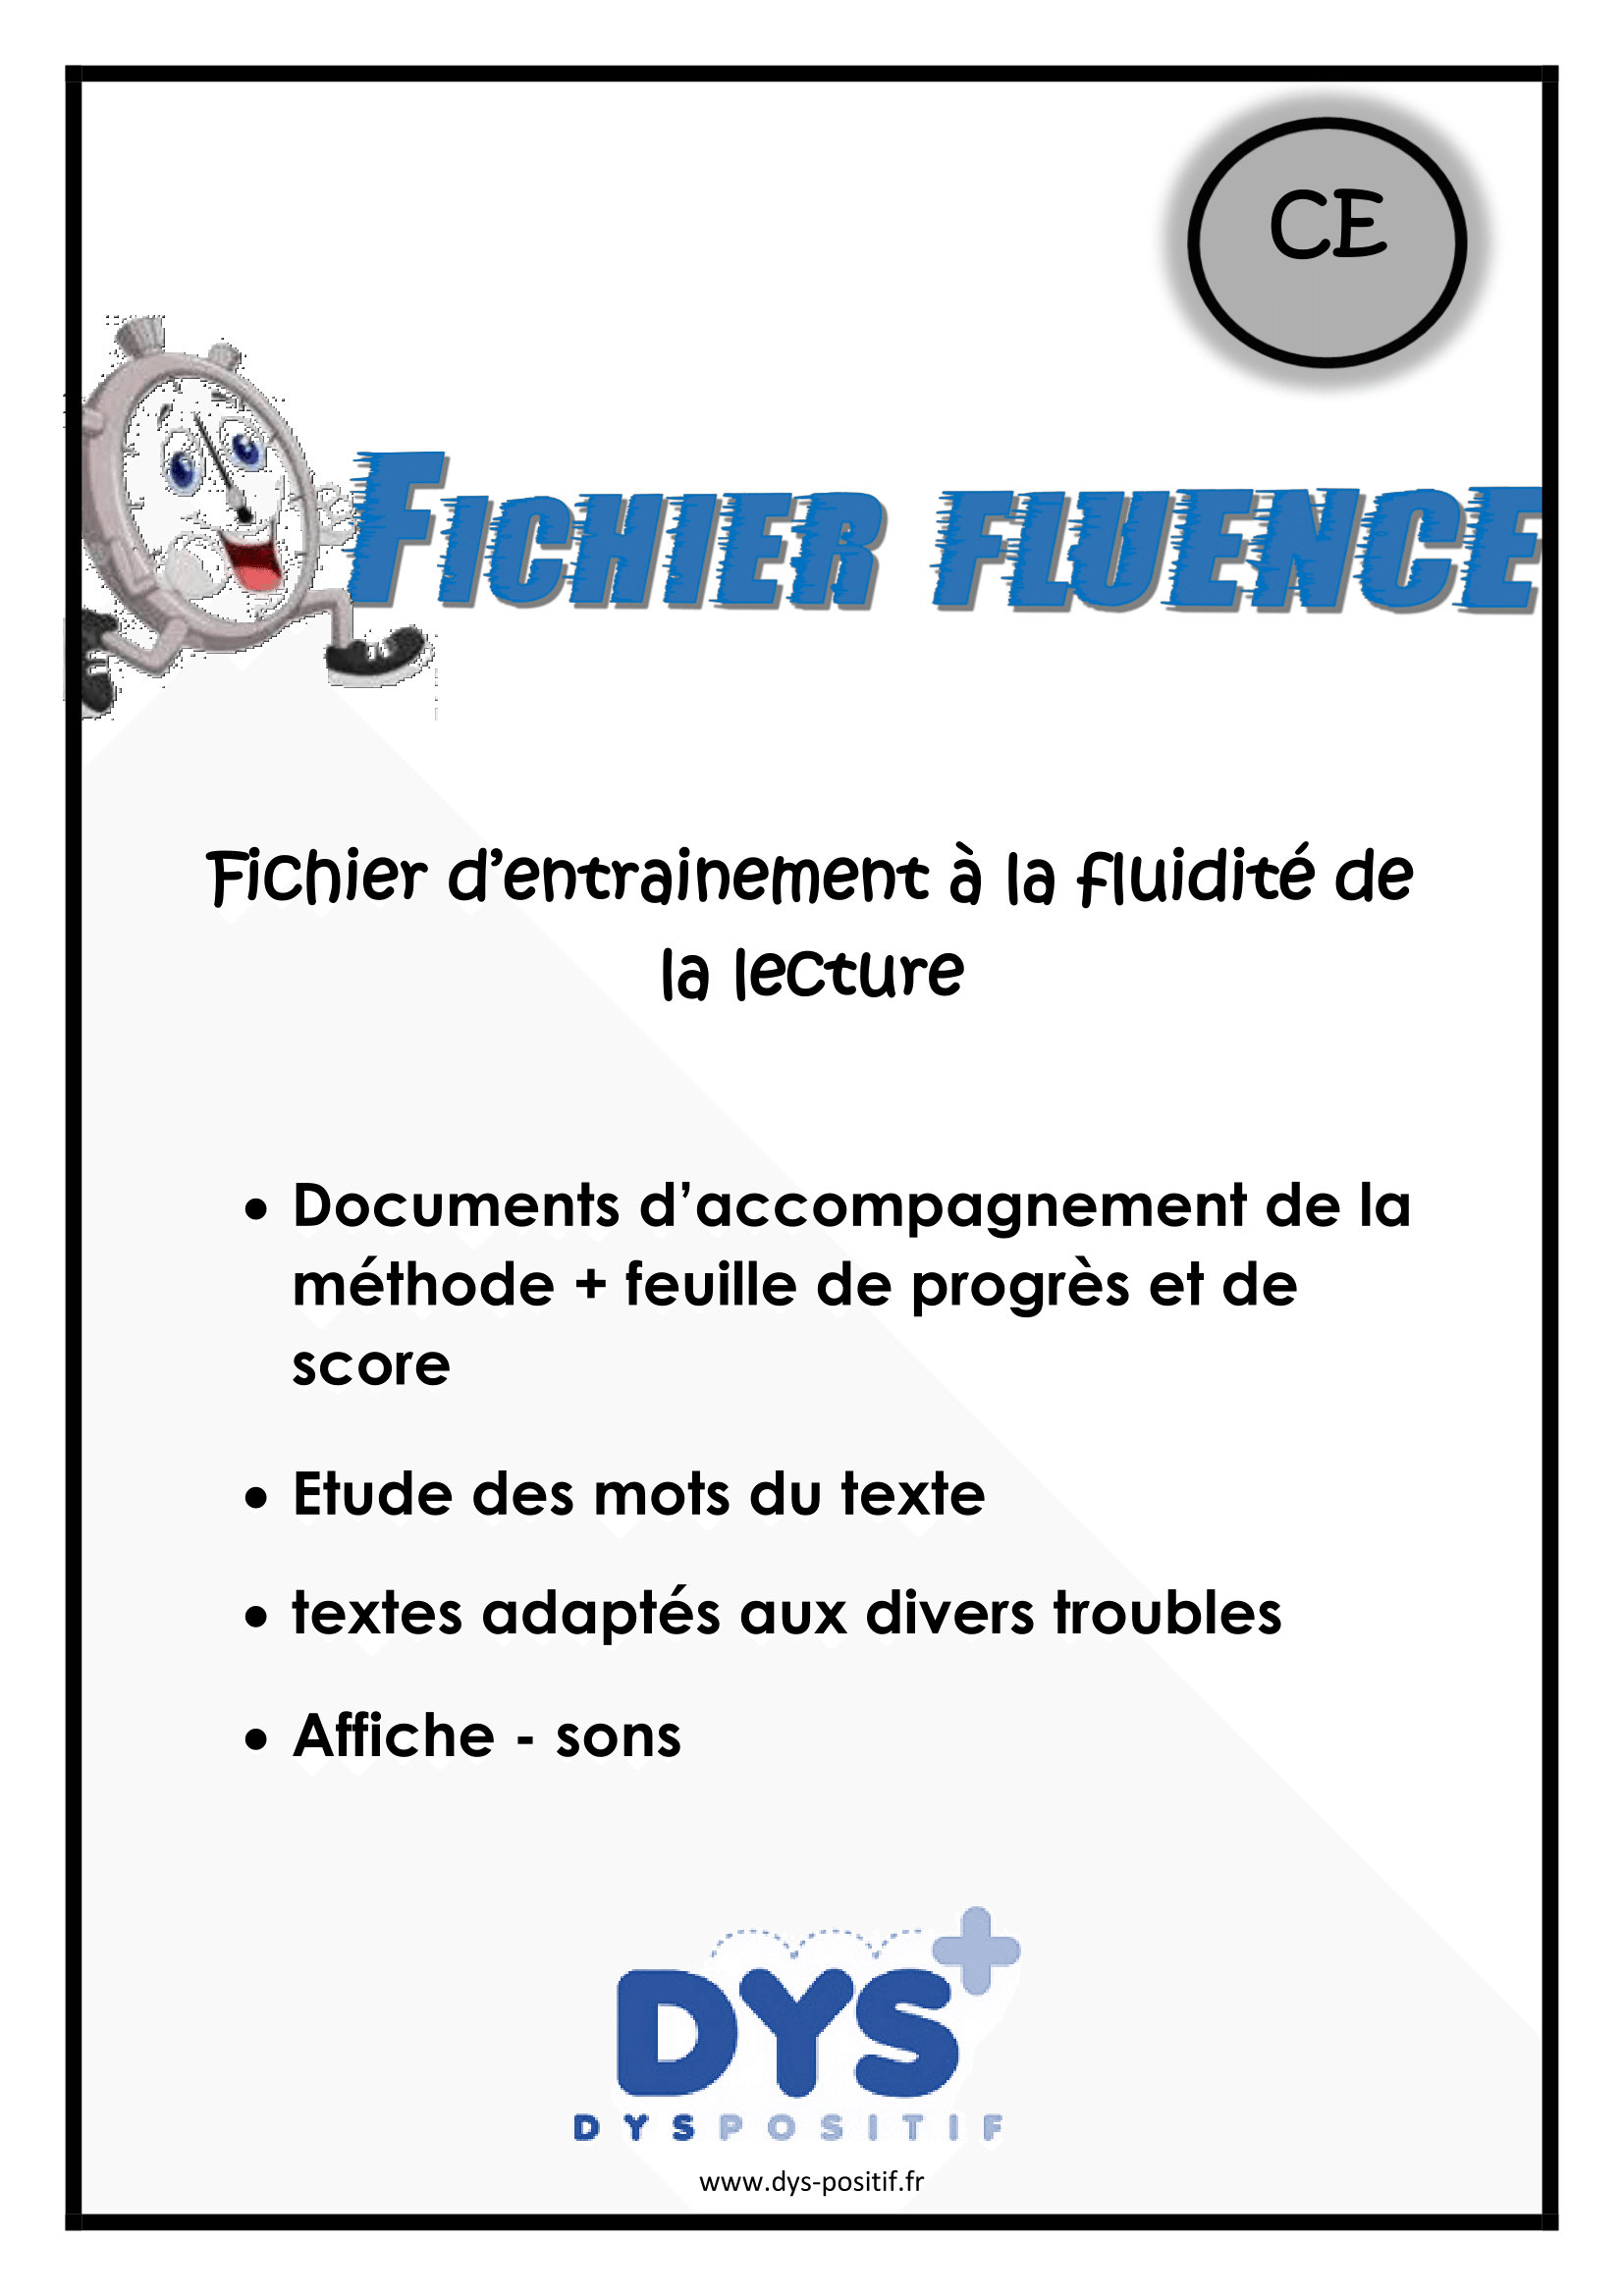 Lecture fluence CE1